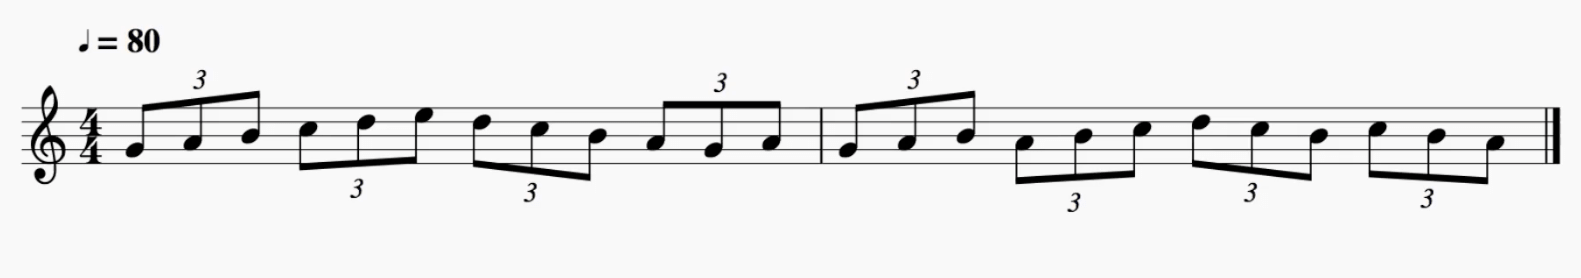 Time Signatures and Measures with +9 Examples [4/4, 3/4, 6/8   ]